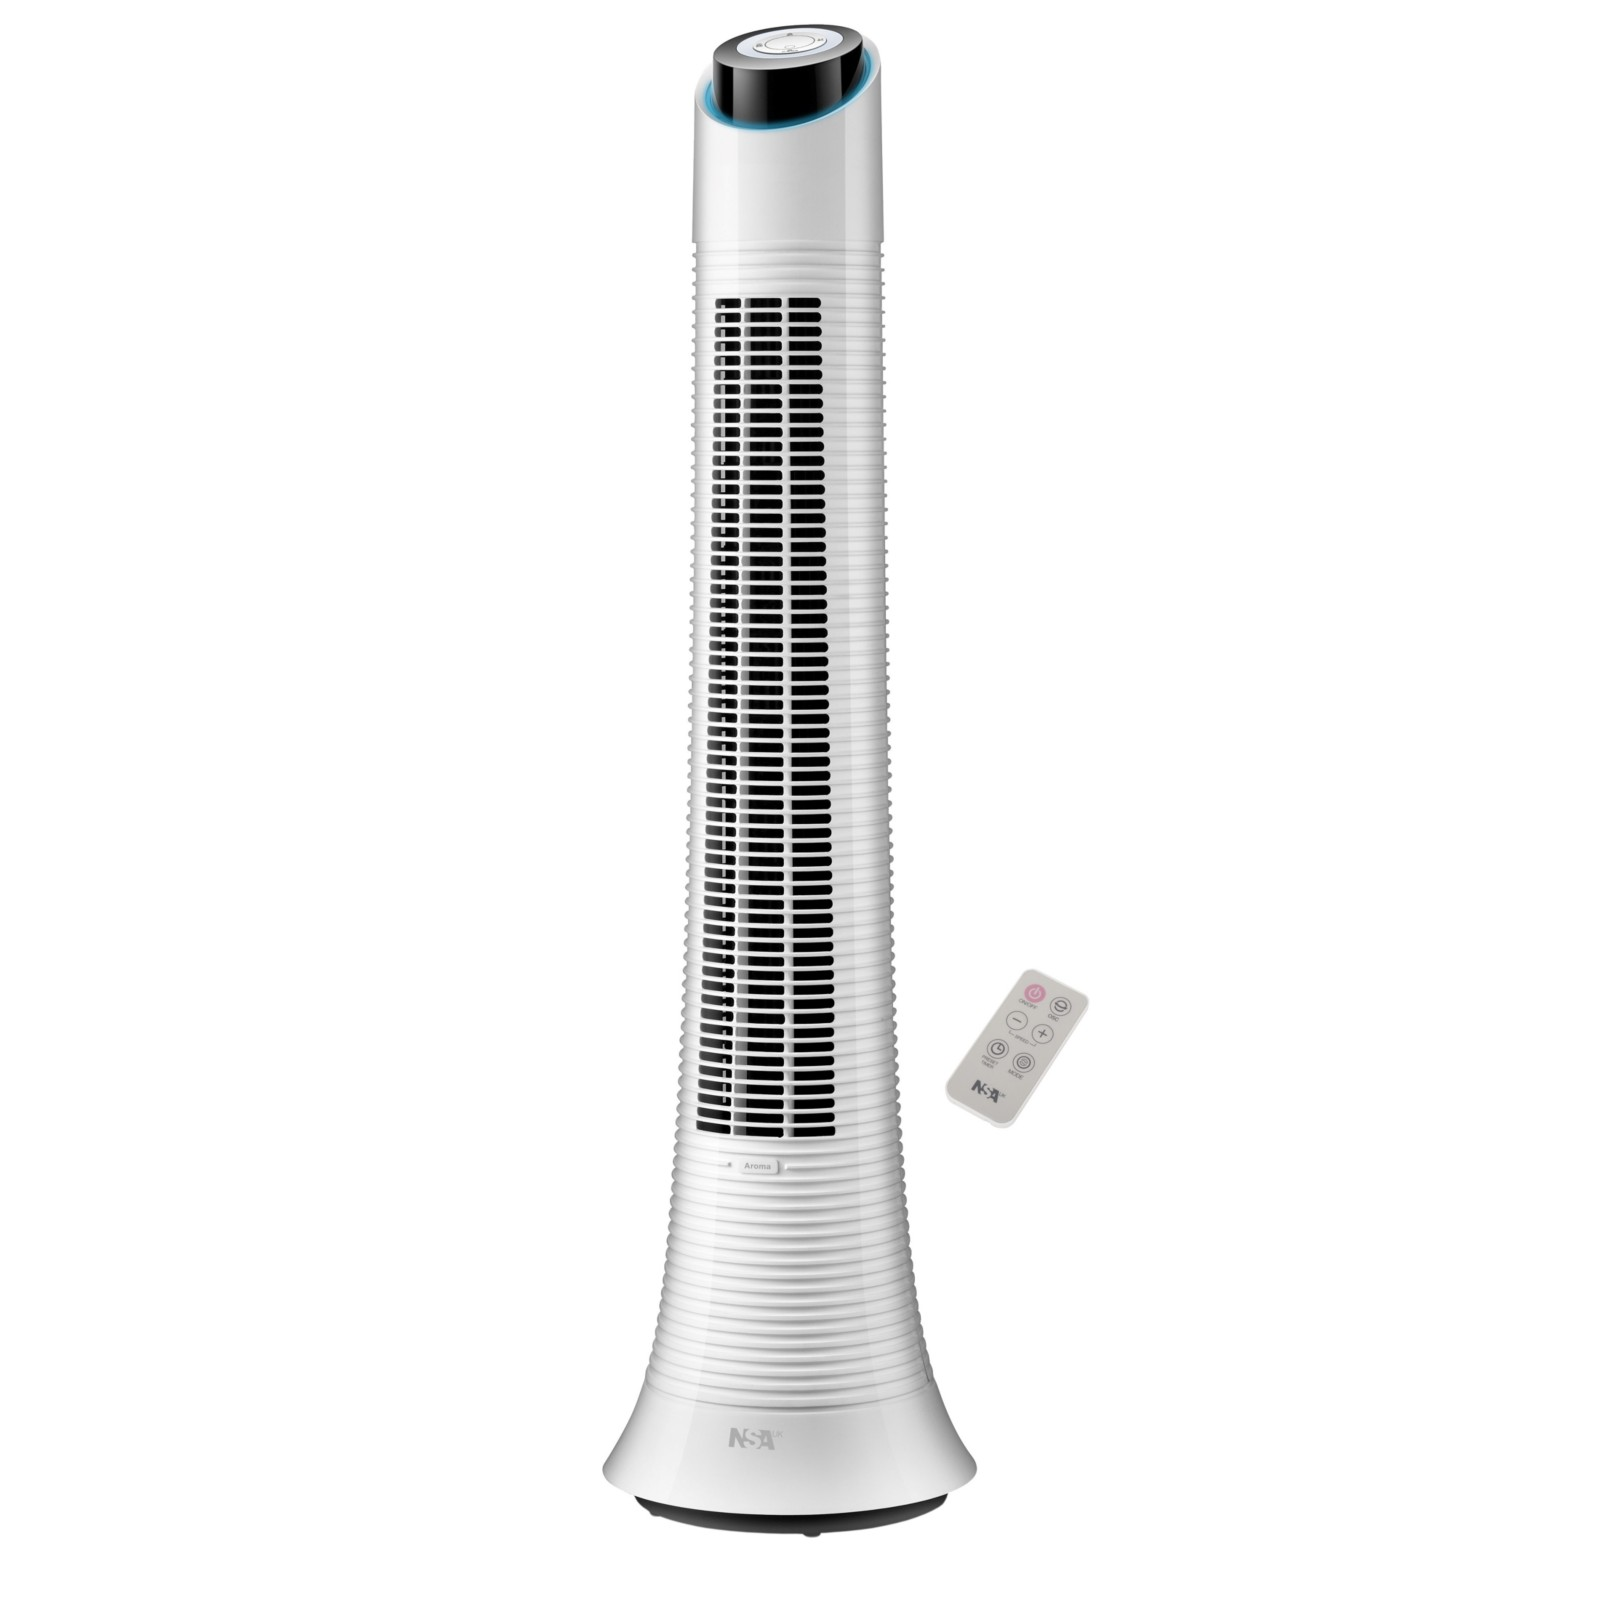 NSA'UK TFRDC-50RC Rechargeable Tower Fan with Remote Control